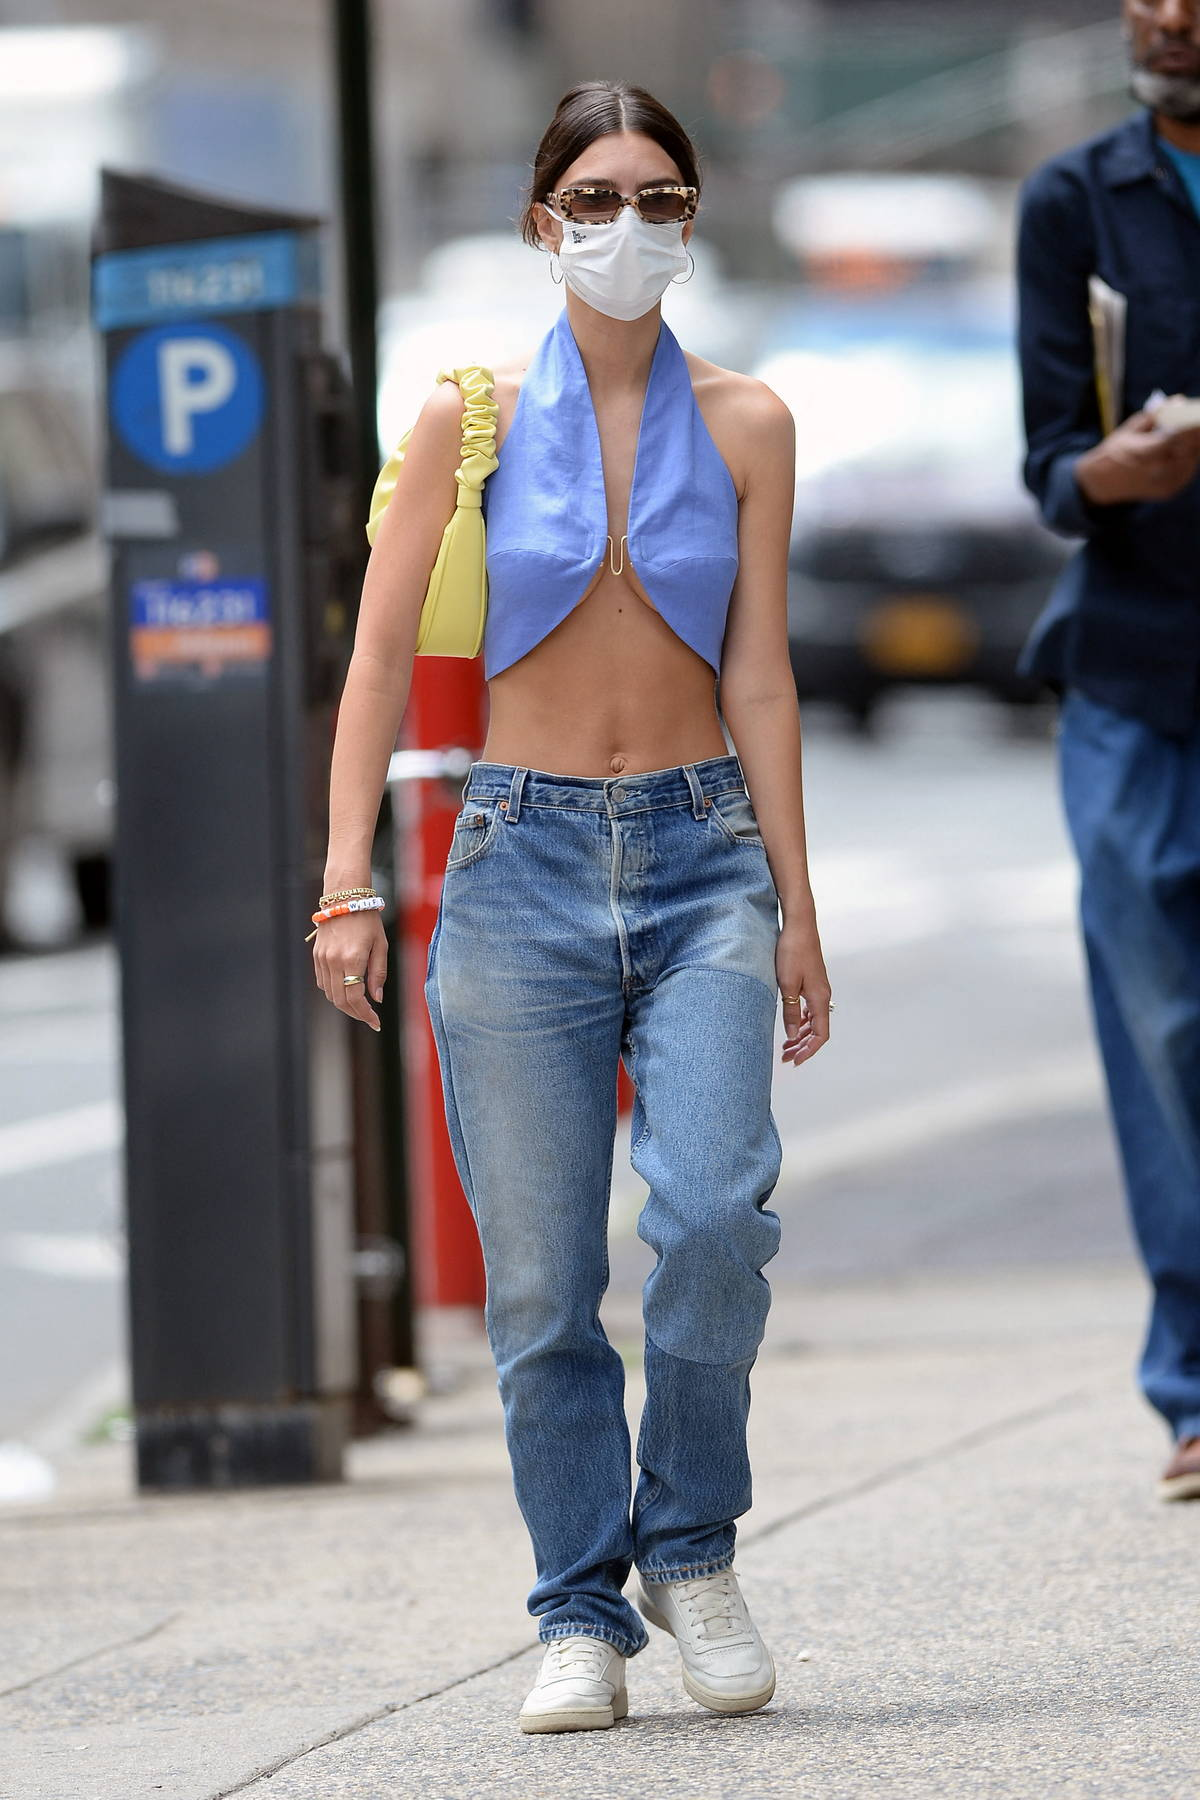 Emily Ratajkowski flashes her washboard abs while out with her husband in New York City